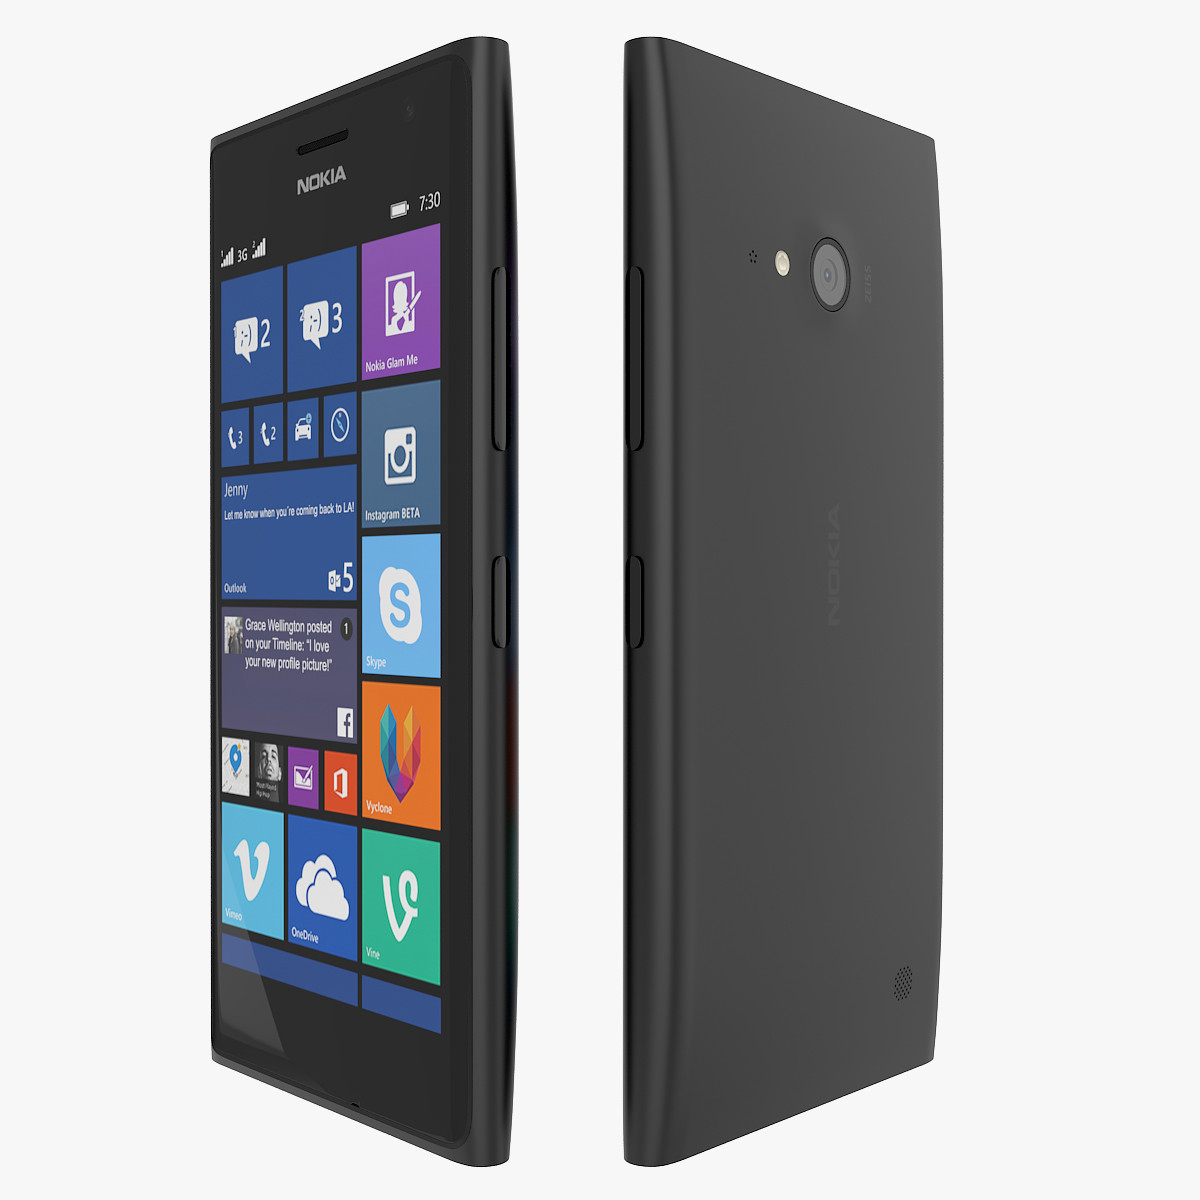 How To Hard Reset Nokia Lumia 730?